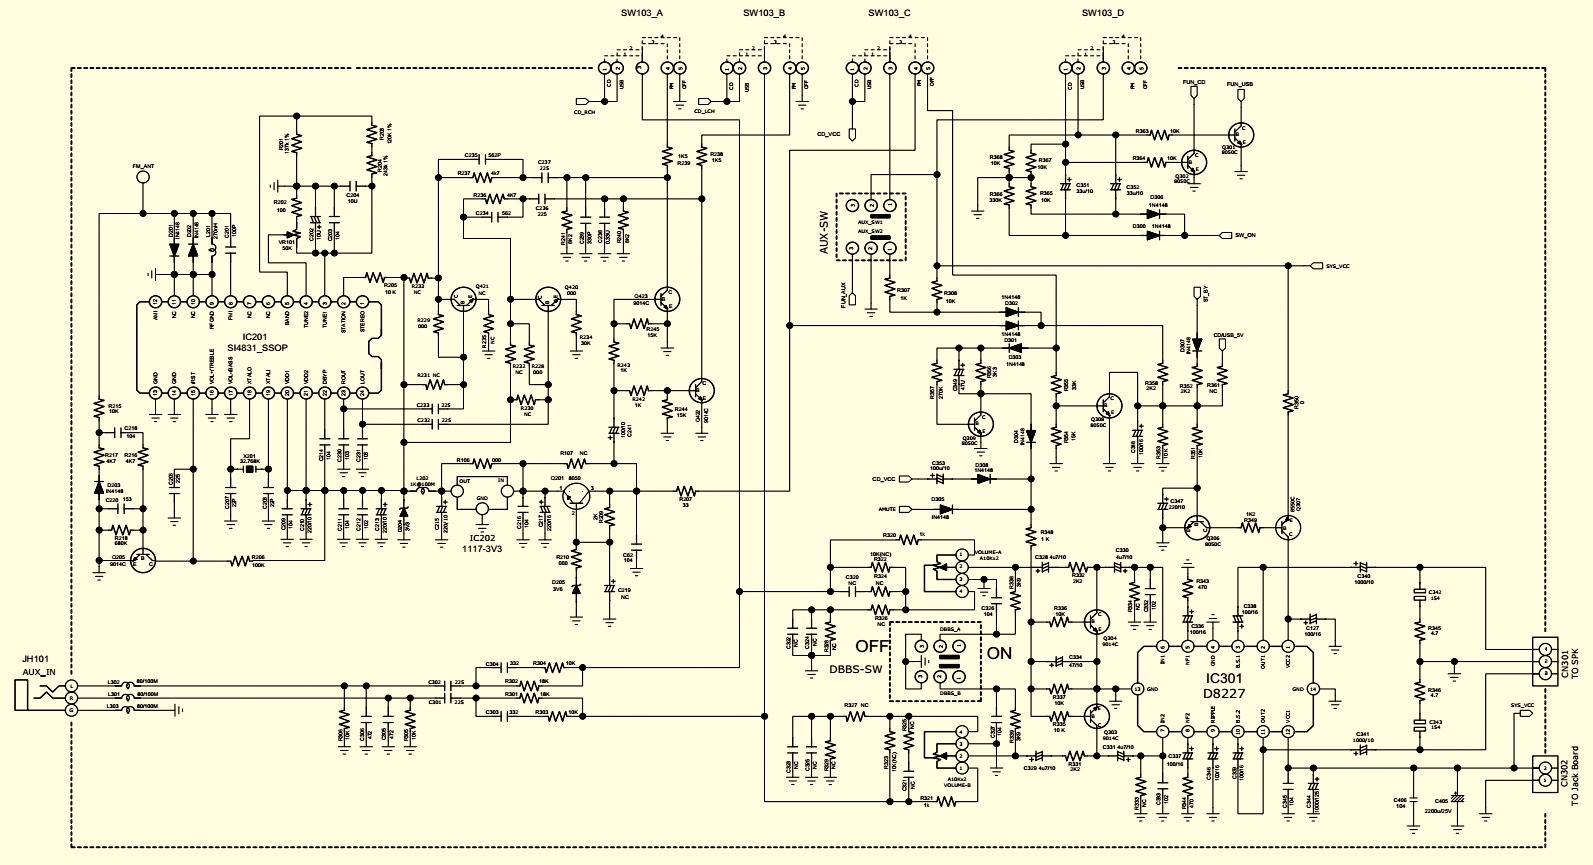 Philips Az385 05 12 96 Cd Mp3 Fm Usb Schematic Exploded View Circuit Diagram Main Board And Pwb Bottom